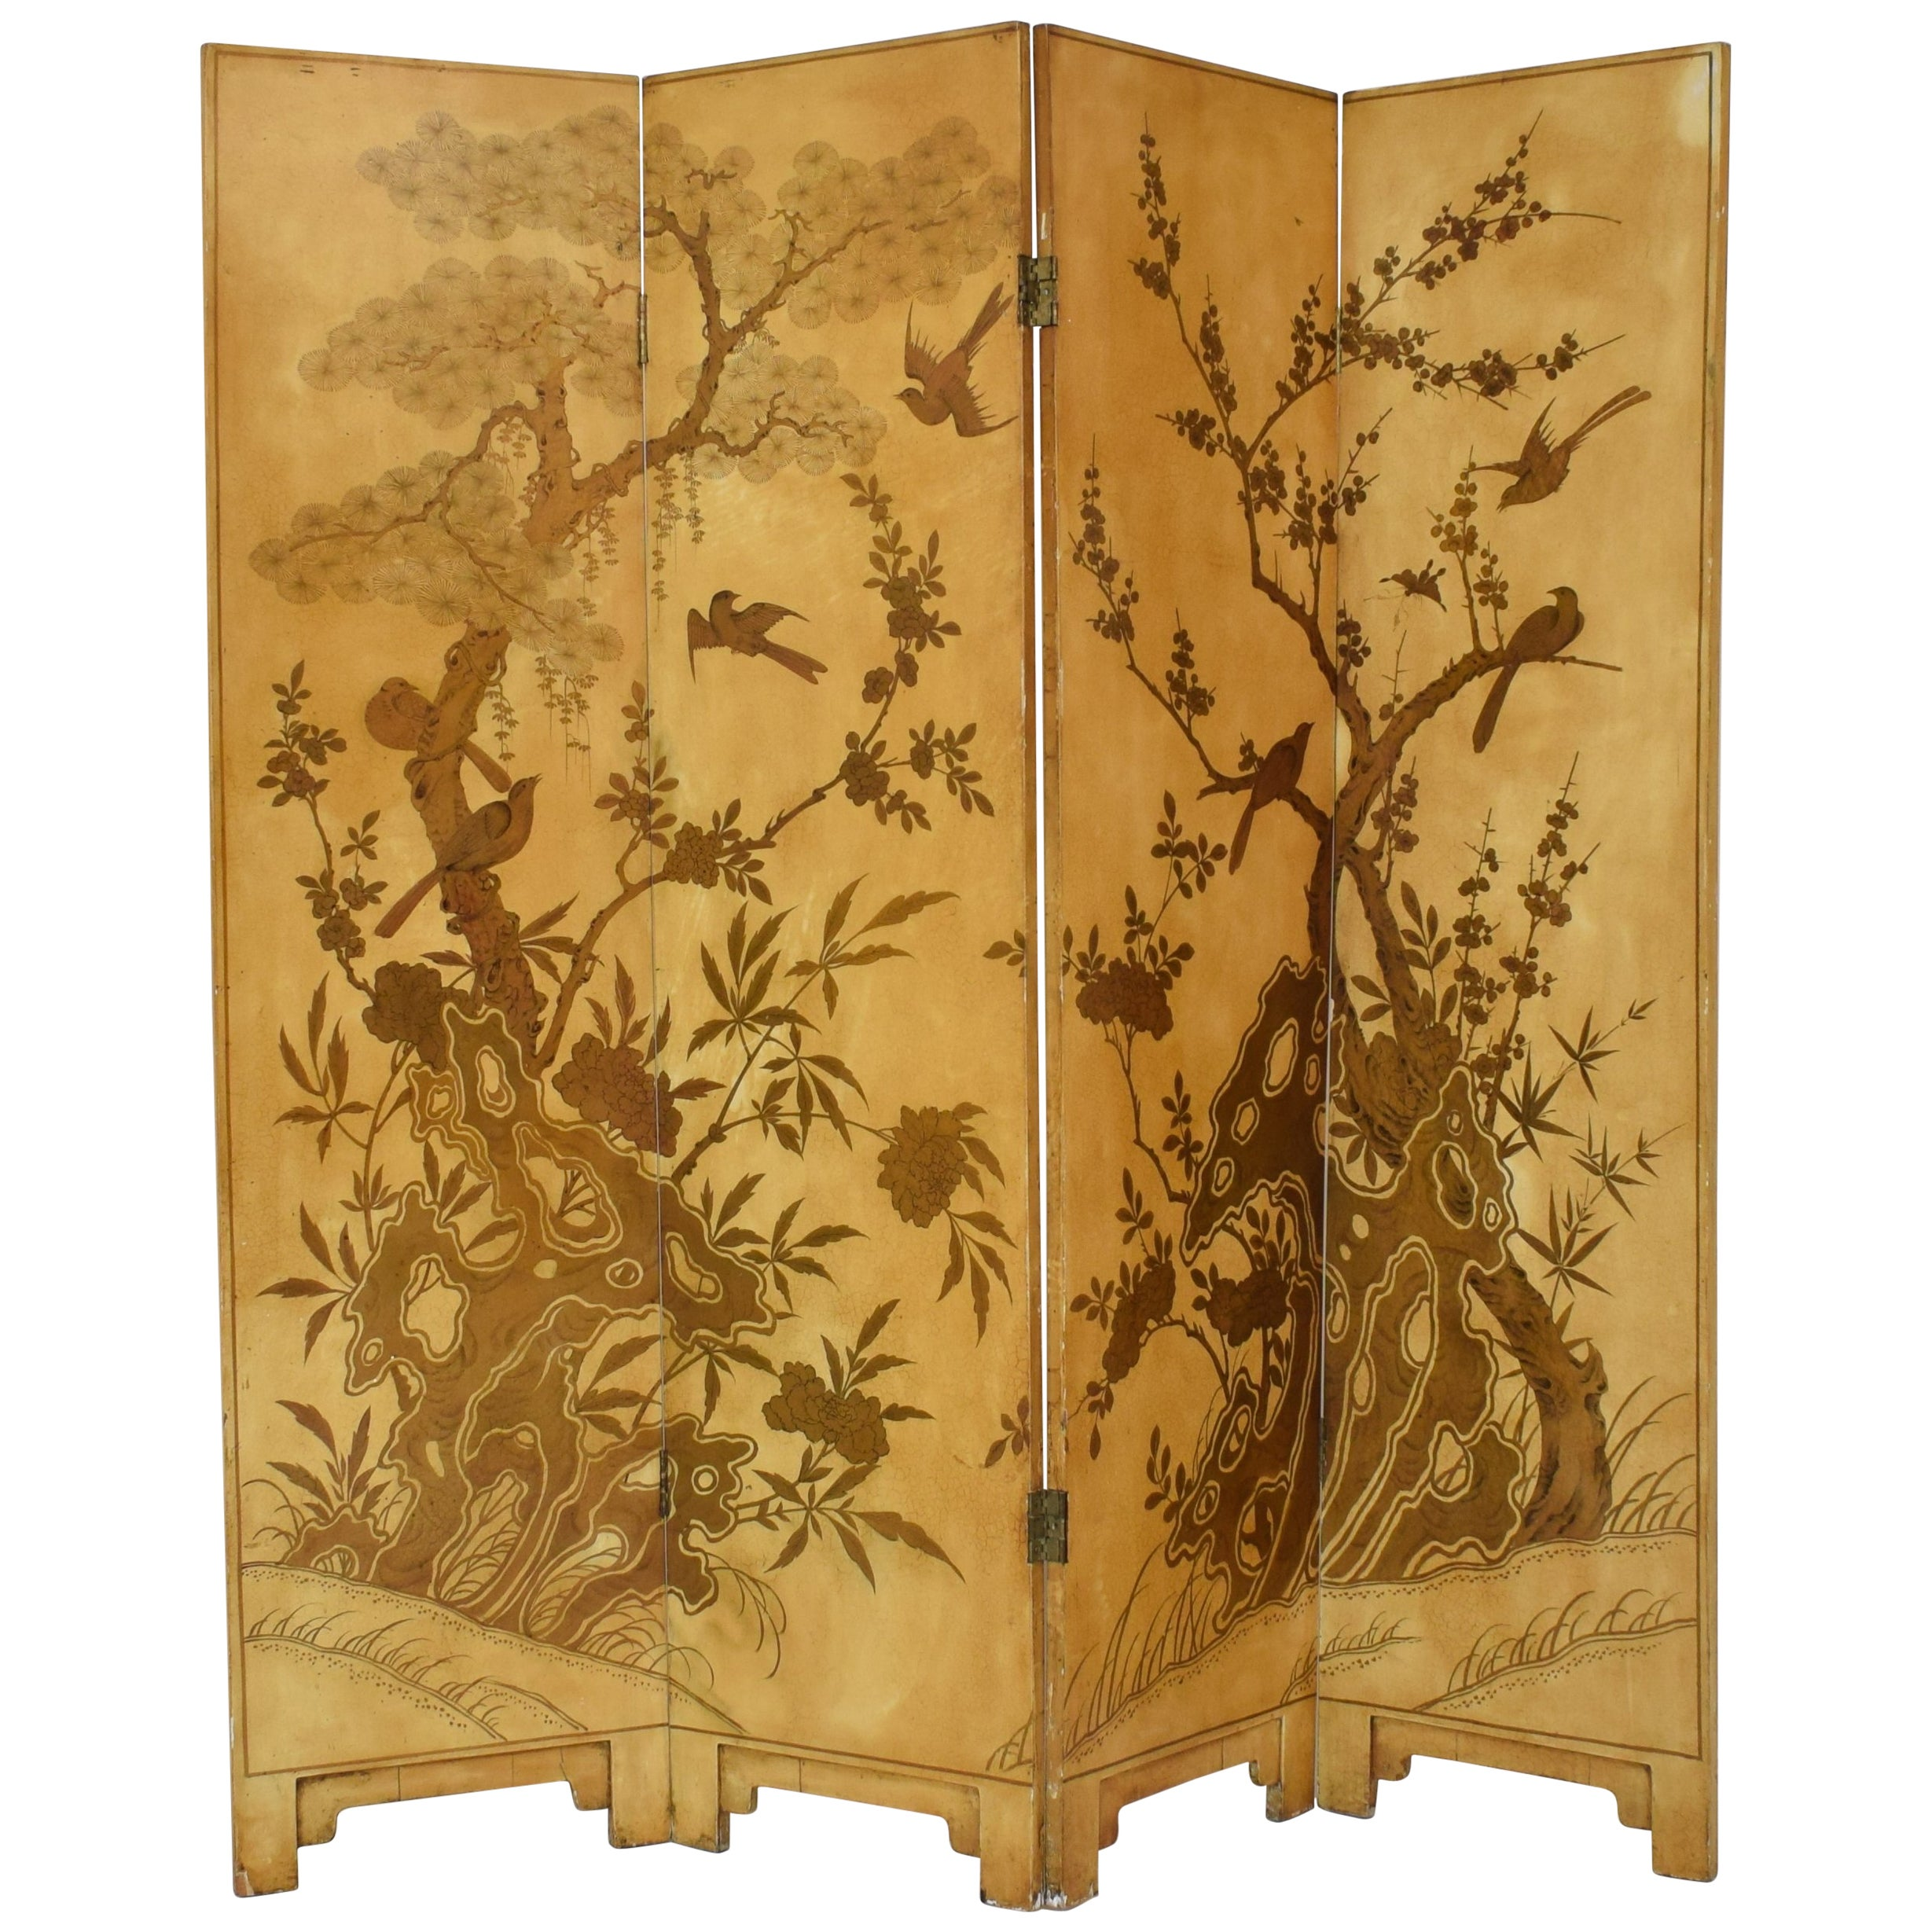 Paravent Original 19th Century French Chinoiserie Lacquer Four Panel Screen Paravent 1890s